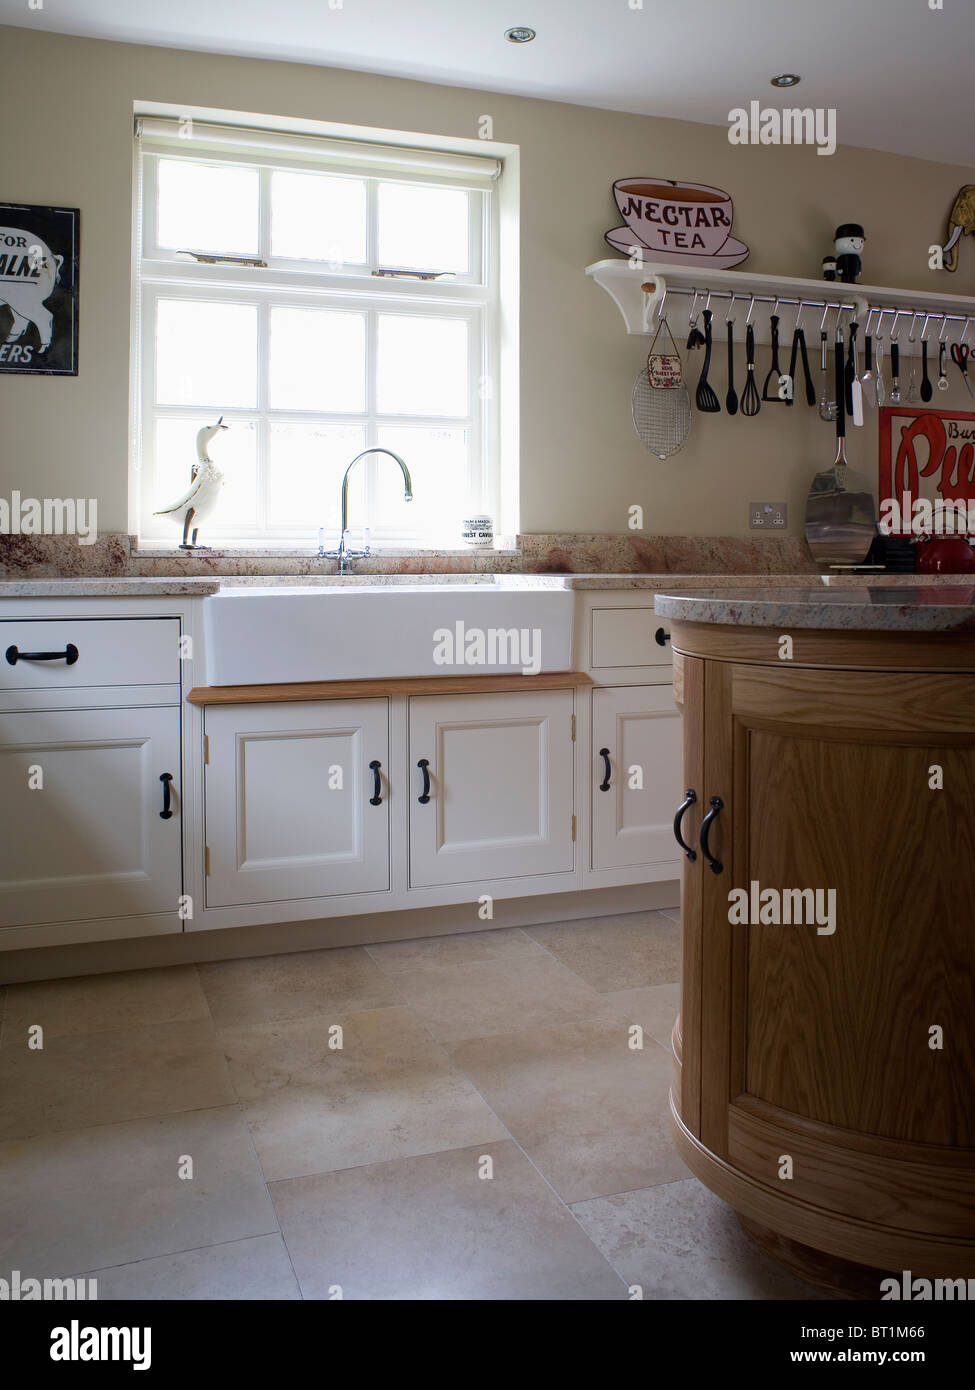 Belfast Sink Below Window In Cream Country Kitchen With Limestone Flooring